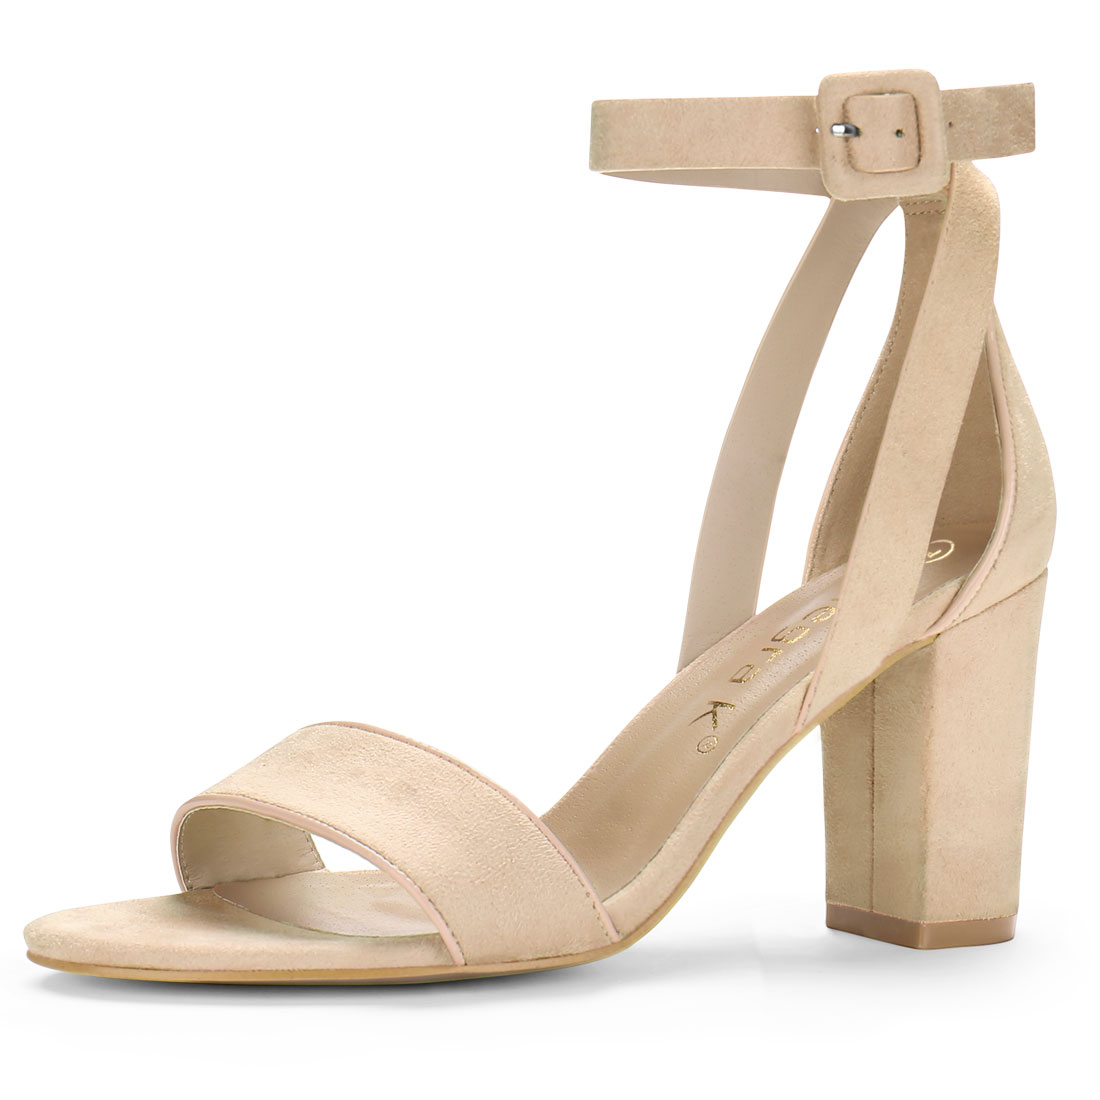 Women PU Panel Piped Chunky Heel Ankle Strap Sandals Beige US 8.5